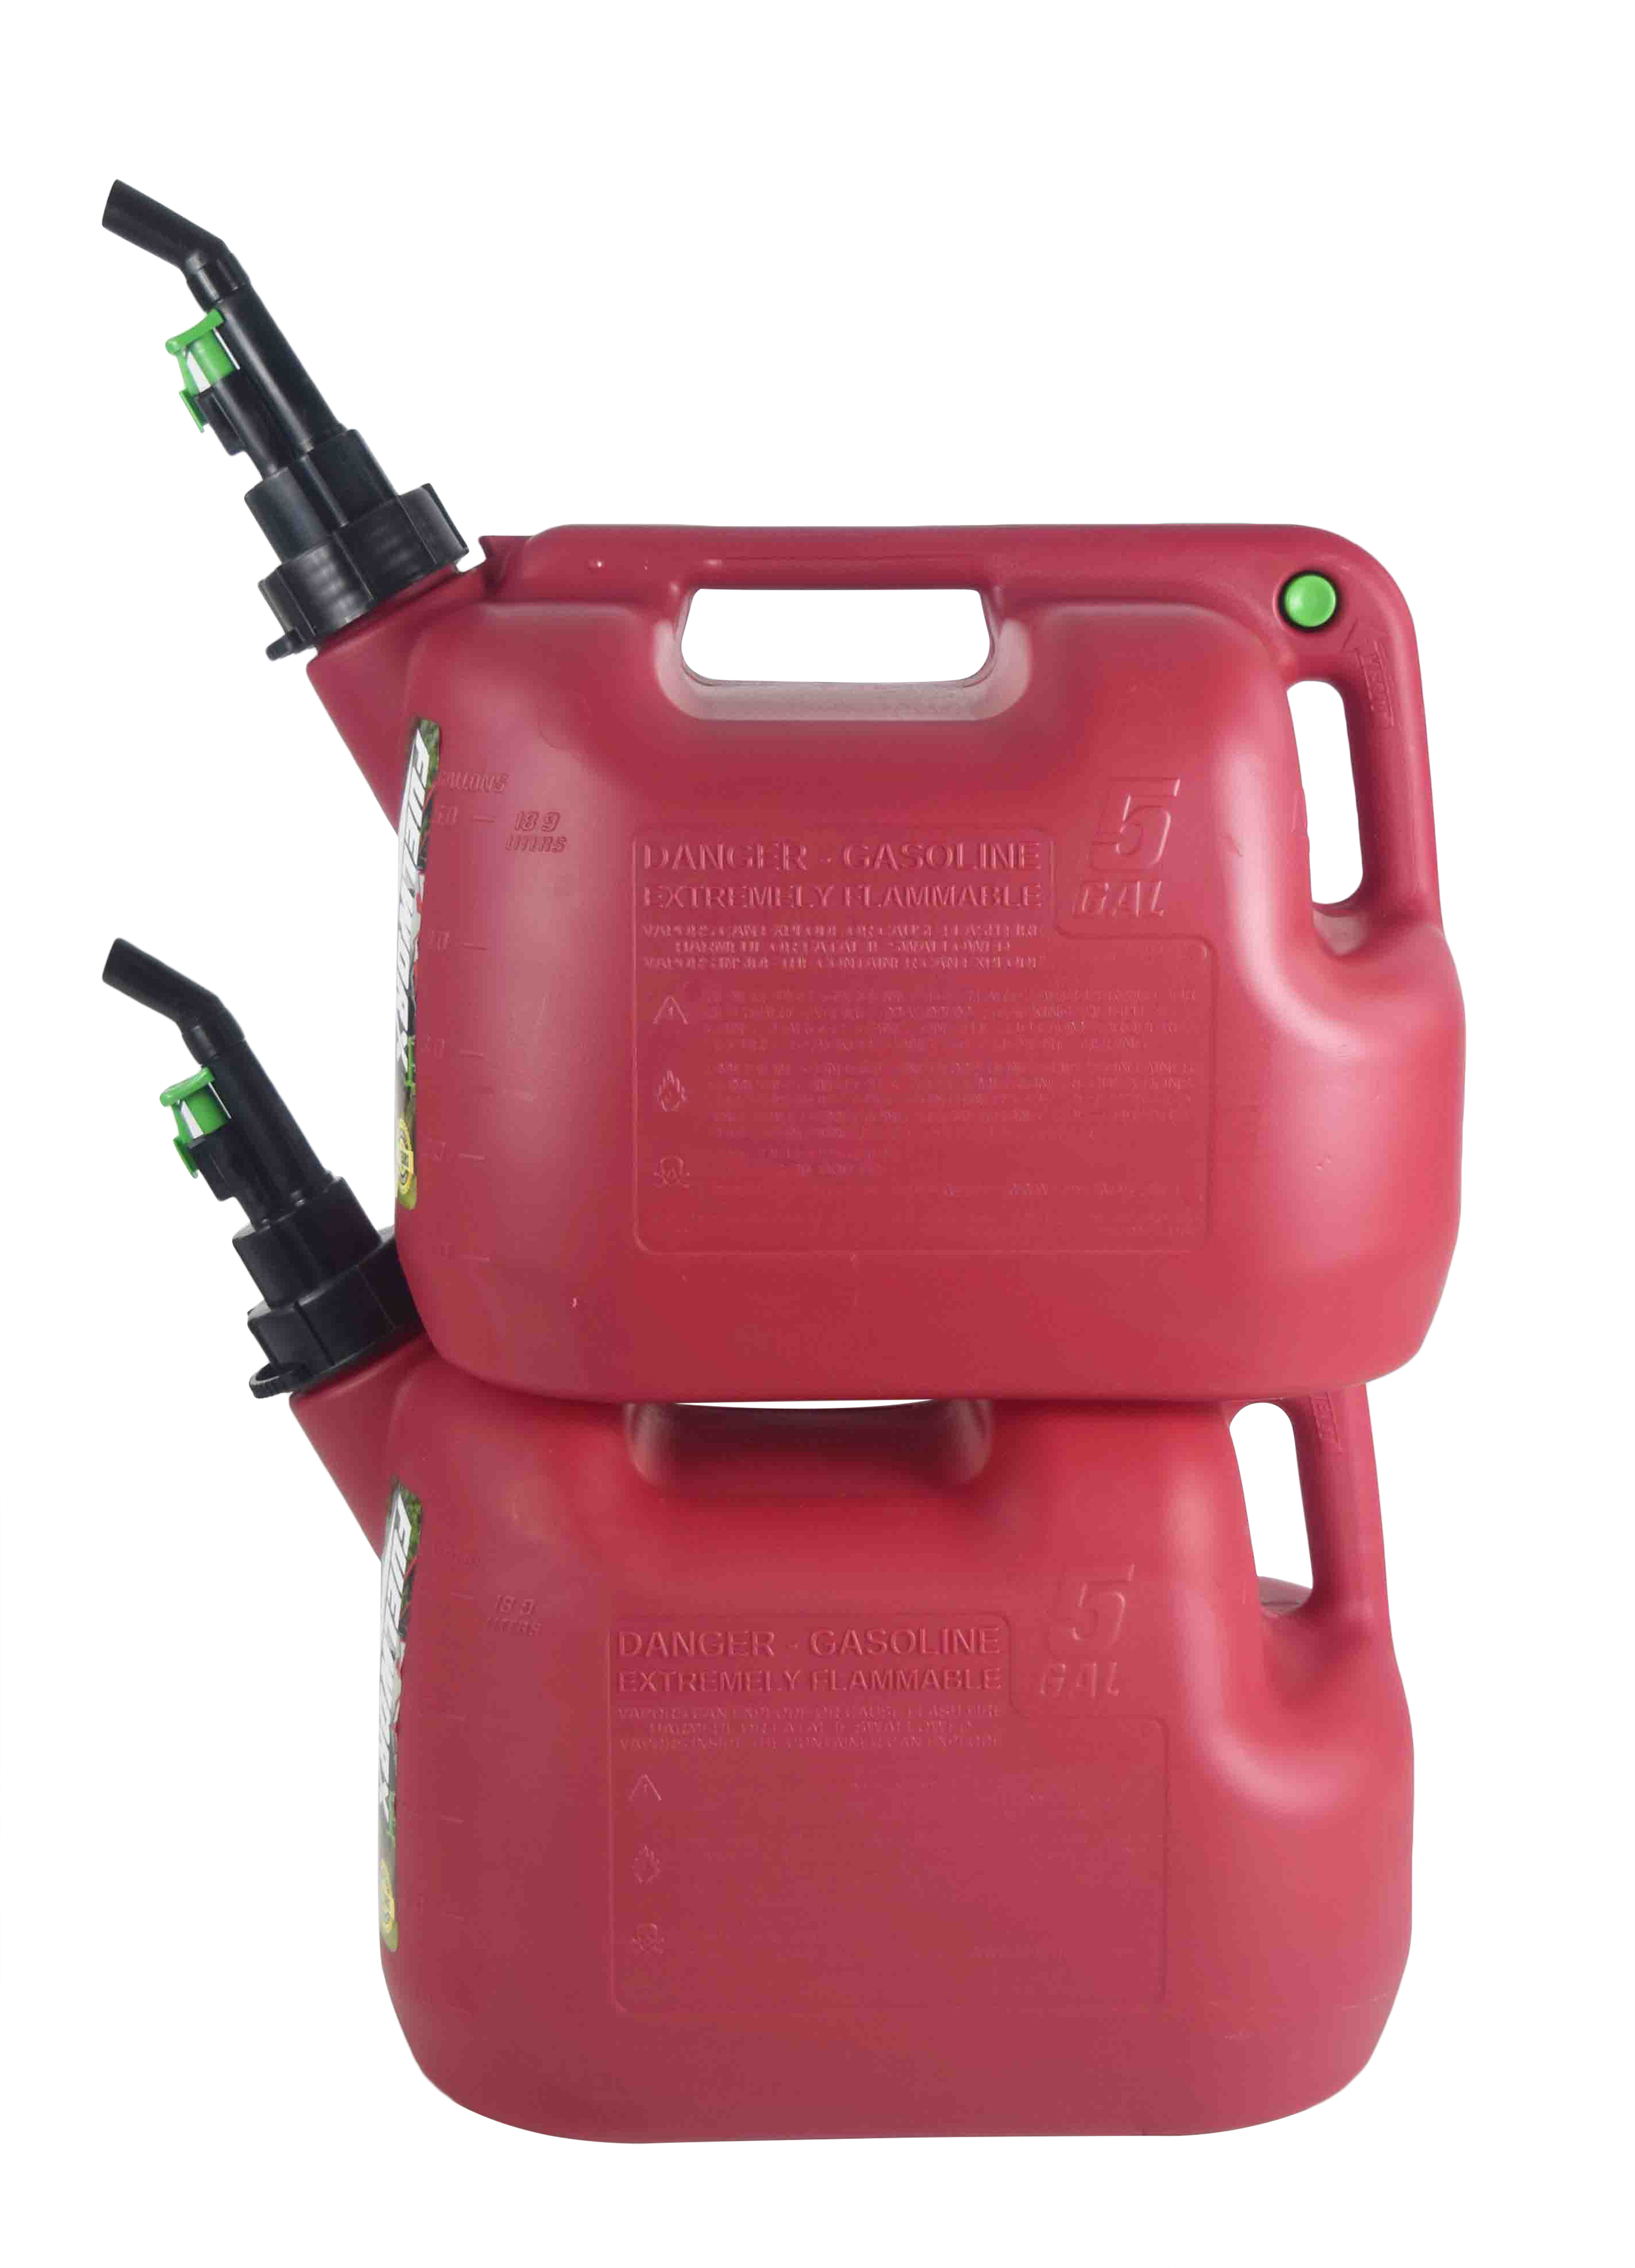 Fuelworx-Red-5-Gallon-Stackable-Fast-Pour-Gas-Fuel-Can-CARB-Compliant-Made-in-The-USA-5-Gallon-Gas-Can-2-Pack-image-2